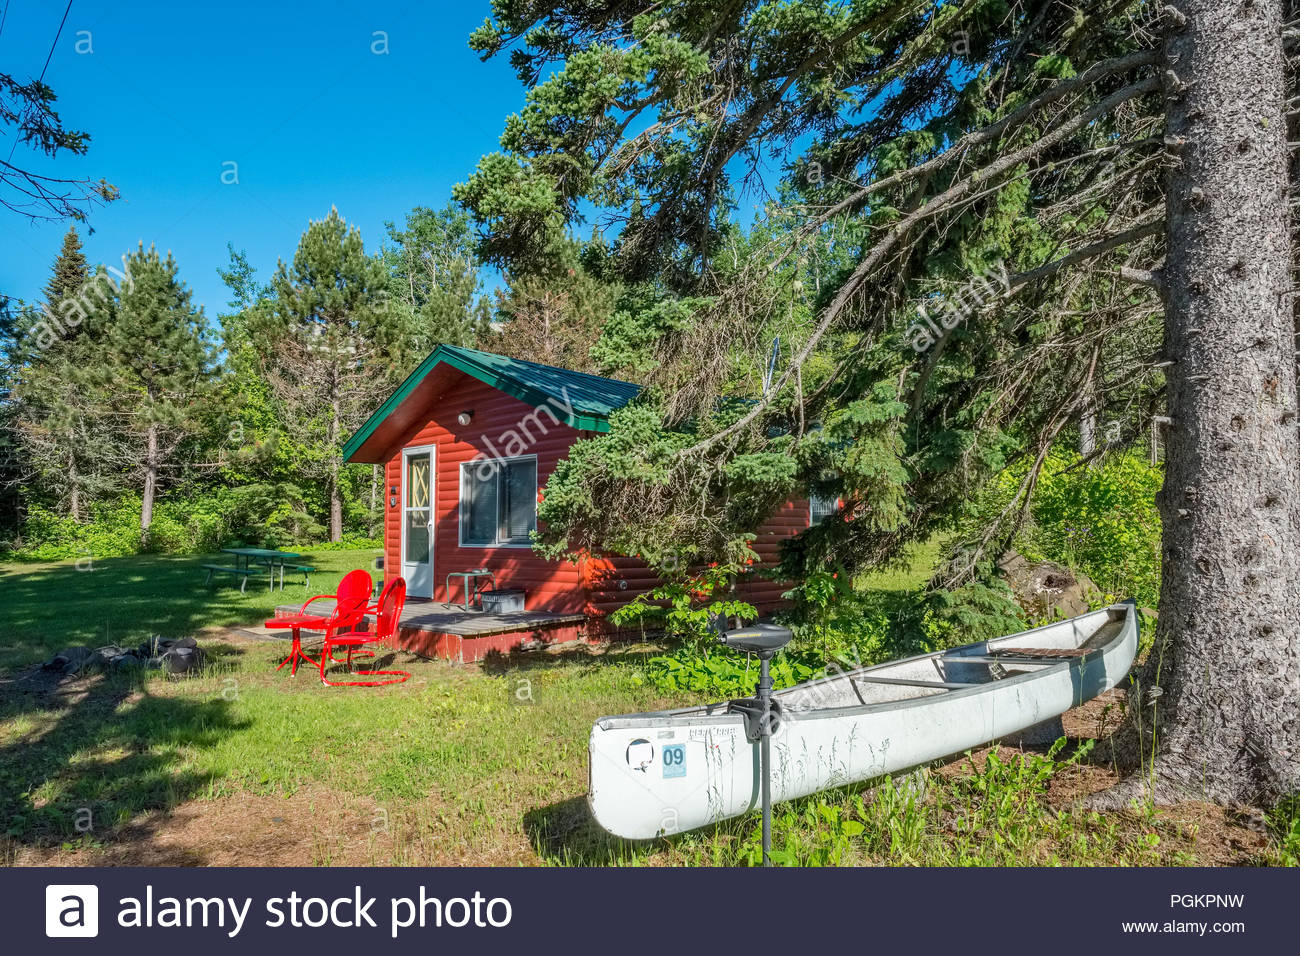 Canoe with electric motor is in front of a cabin located a short walk from Lake Superior, near Grand Marais, Minnesota, USA. Stock Photo